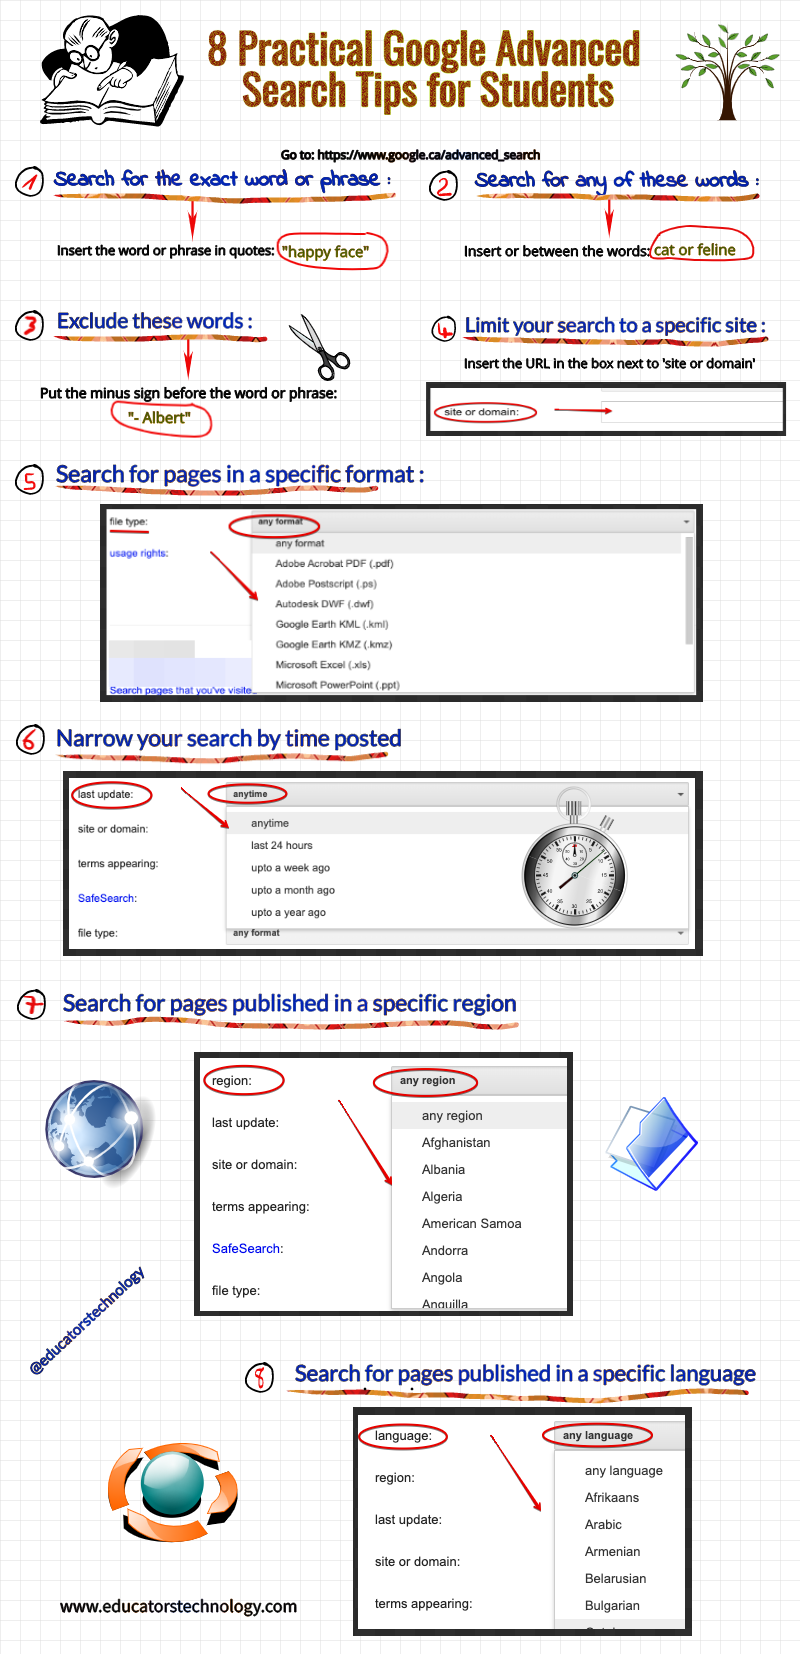 8 Practical Google Advanced Search Tips For Students Educational Technology Work Skills Student